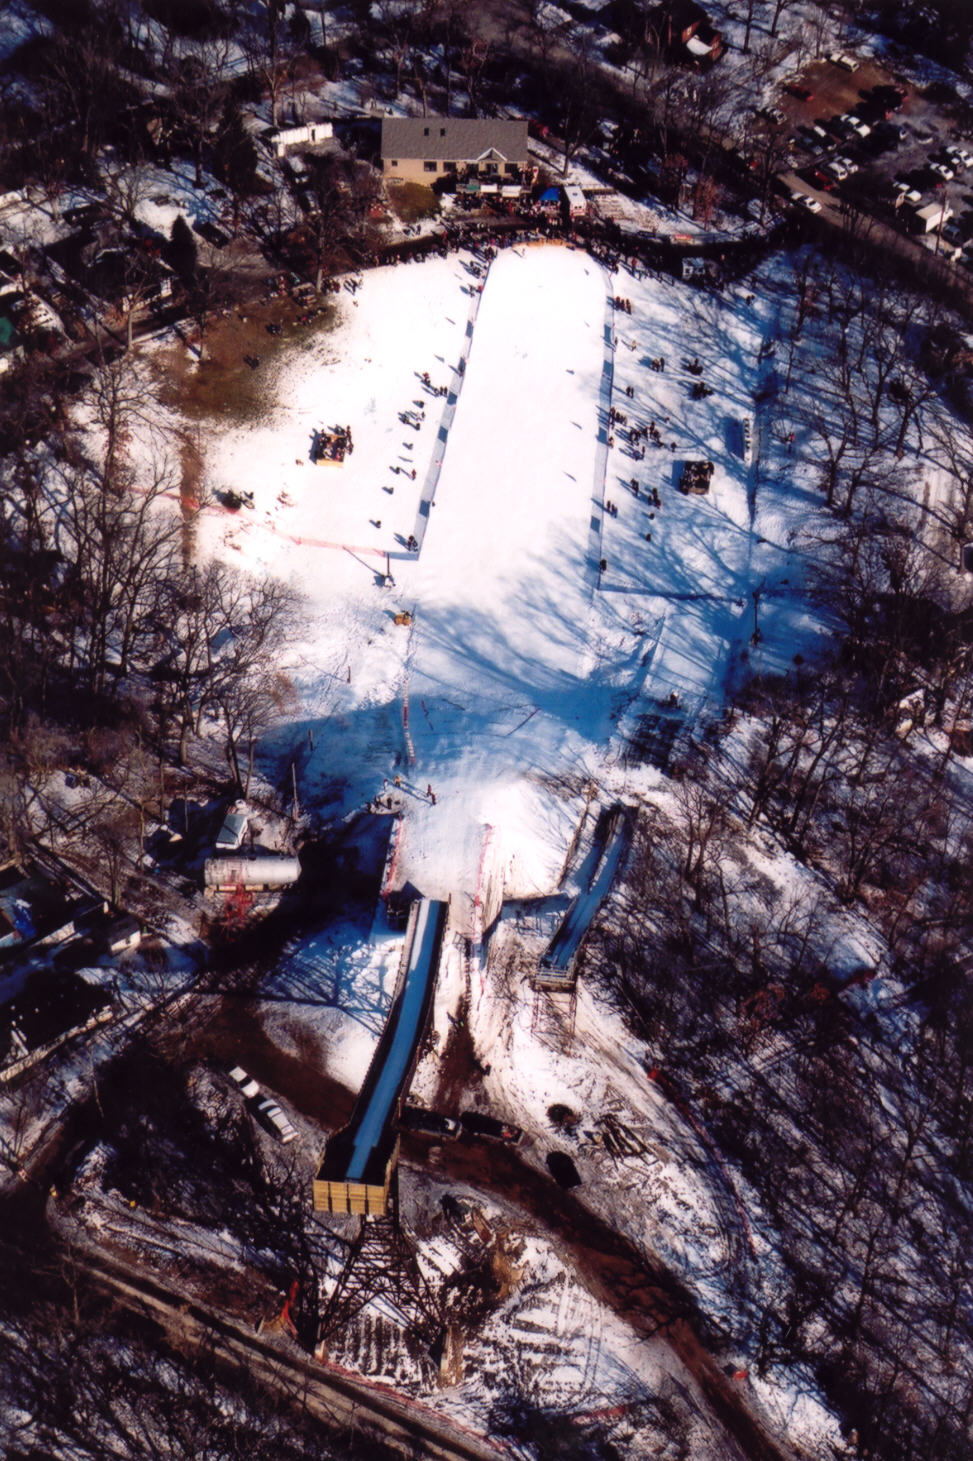 Tower Rental Aerial view of ski jump tower, Fox River Grove, IL